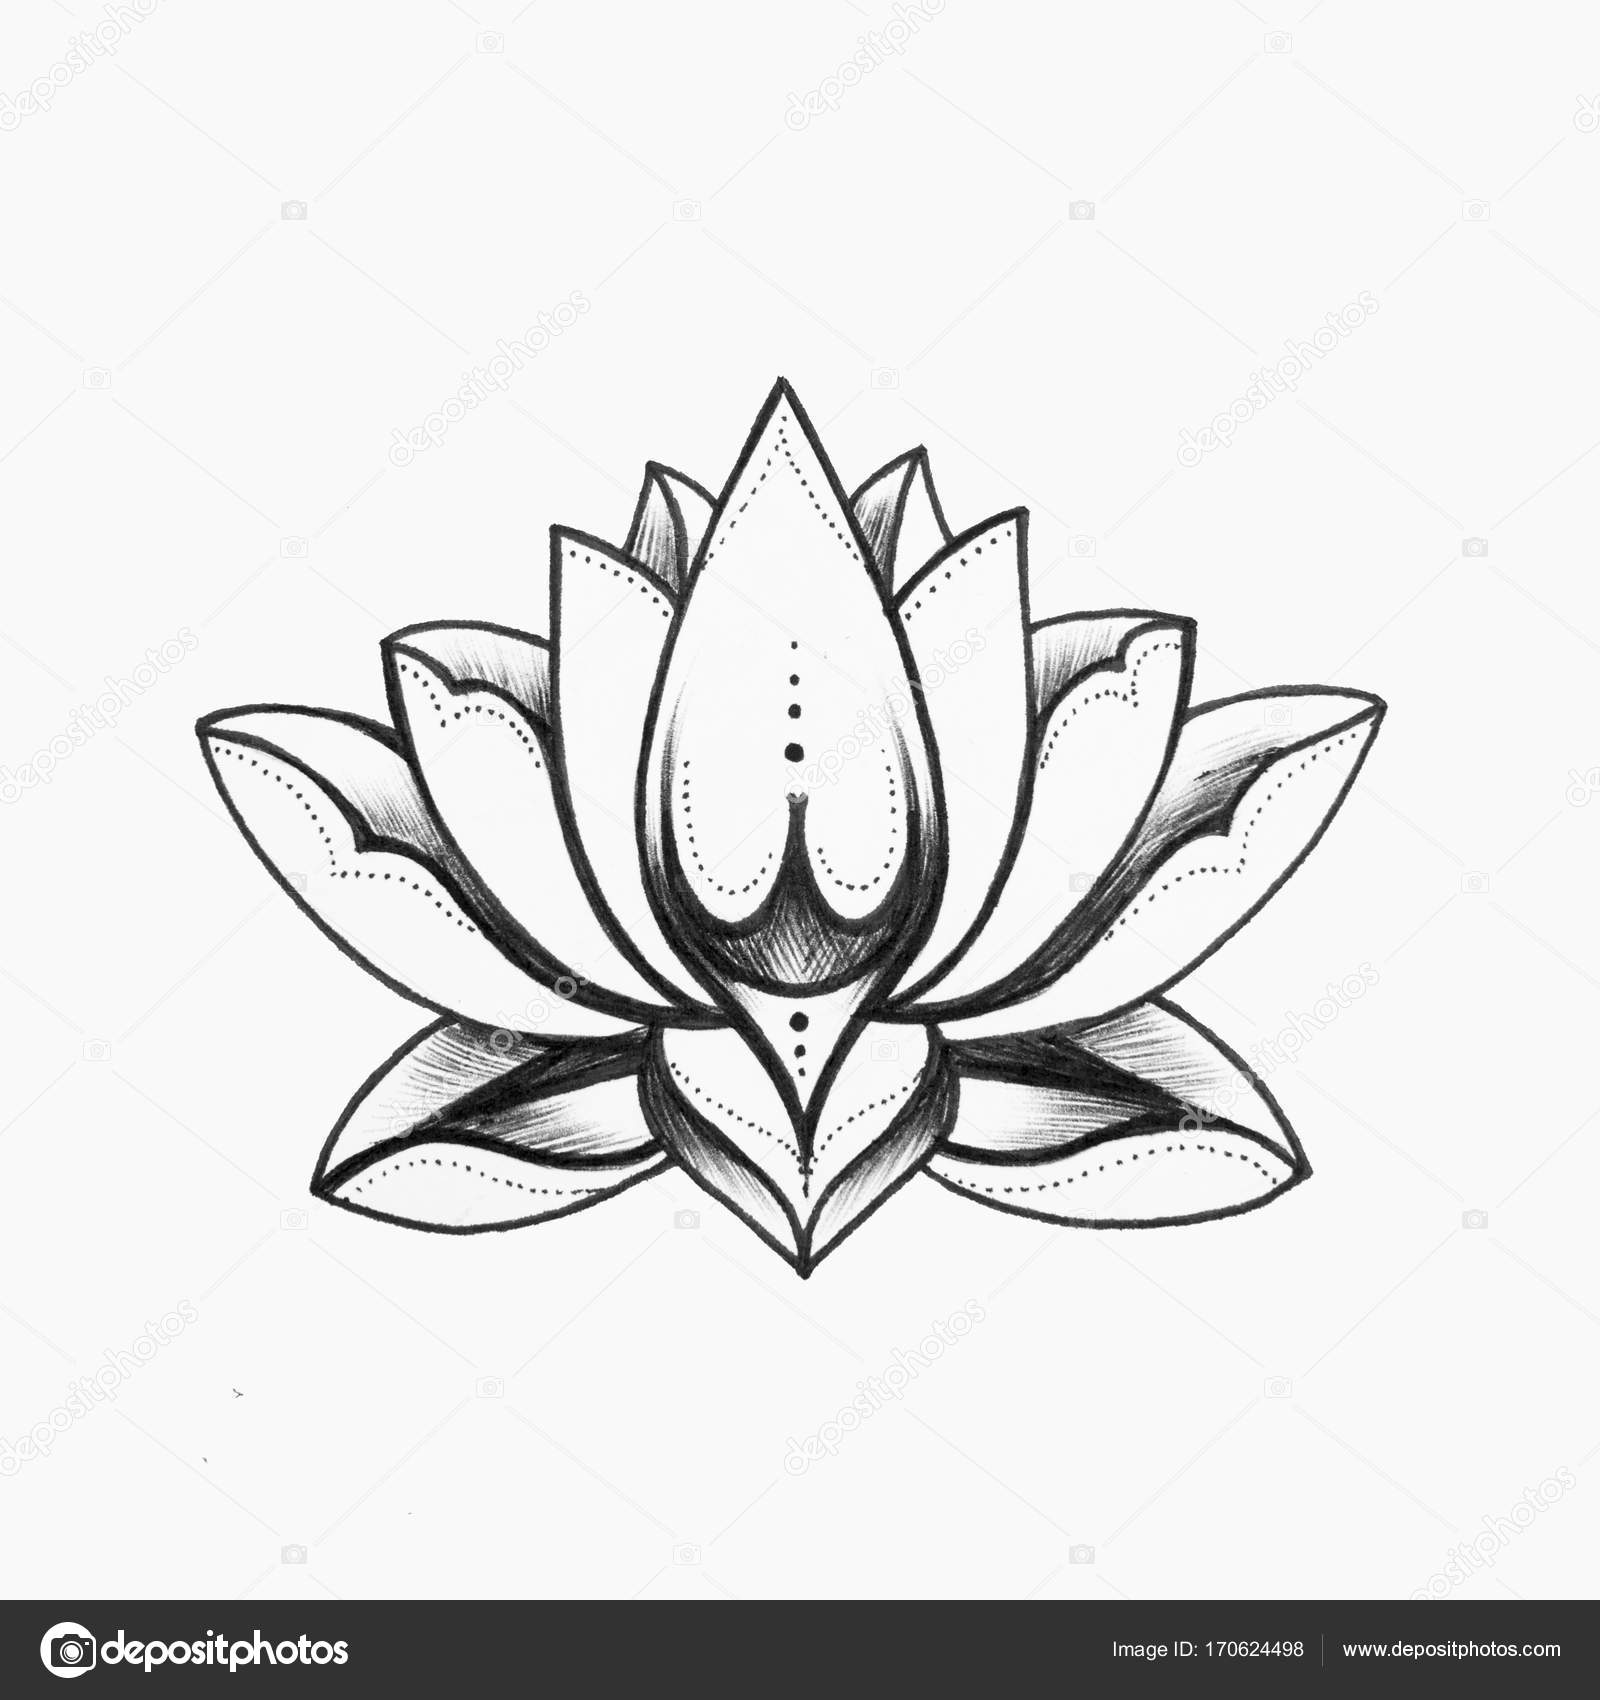 A Sketch Of A Beautiful Black And White Lotus Flower On A White